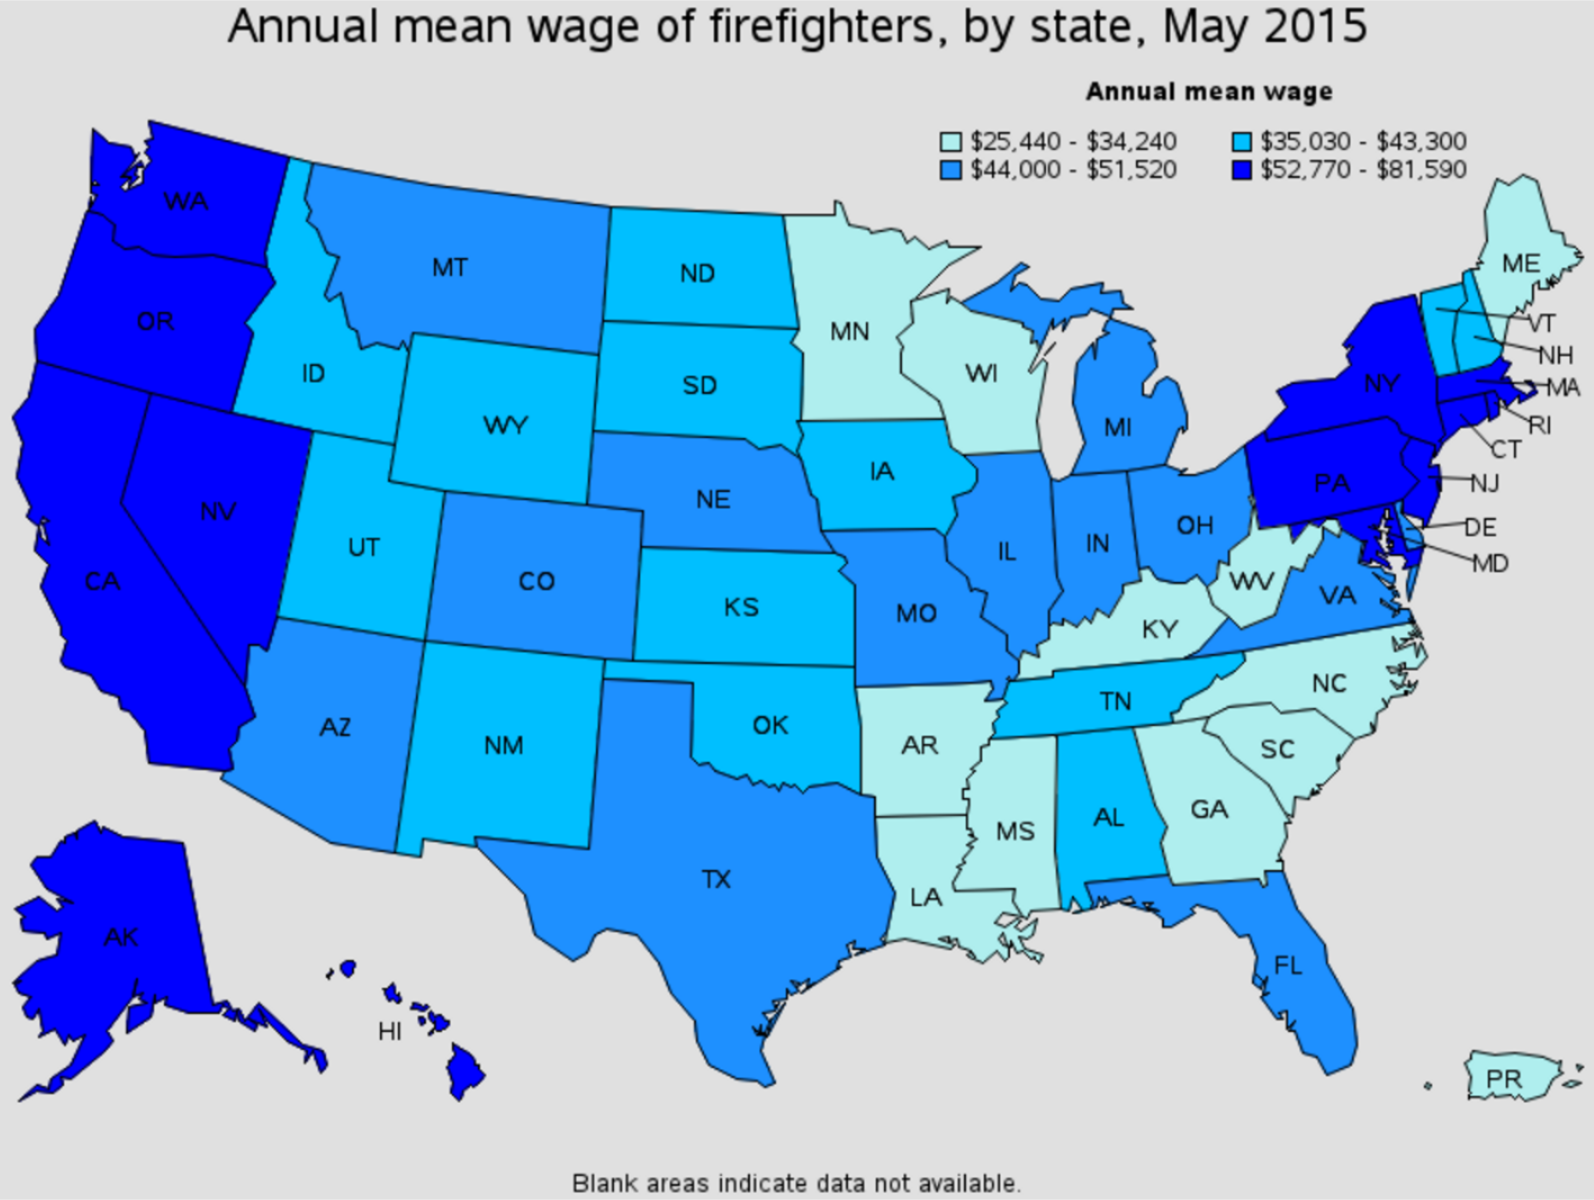 firefighter average salary by state Adelanto California